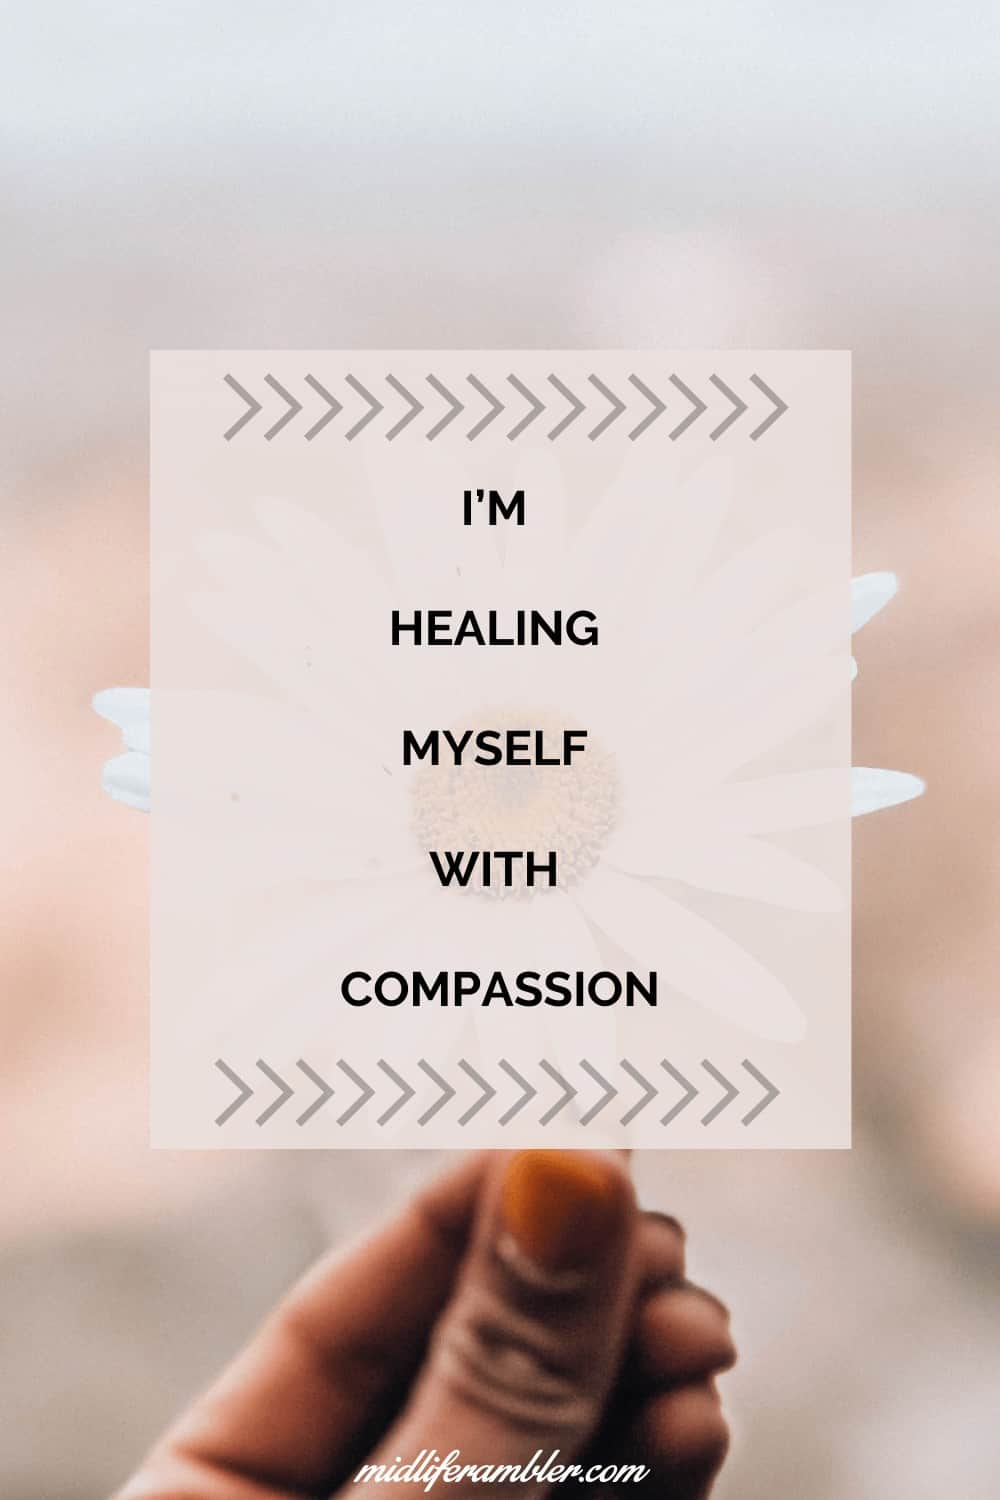 Affirmations for Self-Compassion - I'm healing myself with compassion.